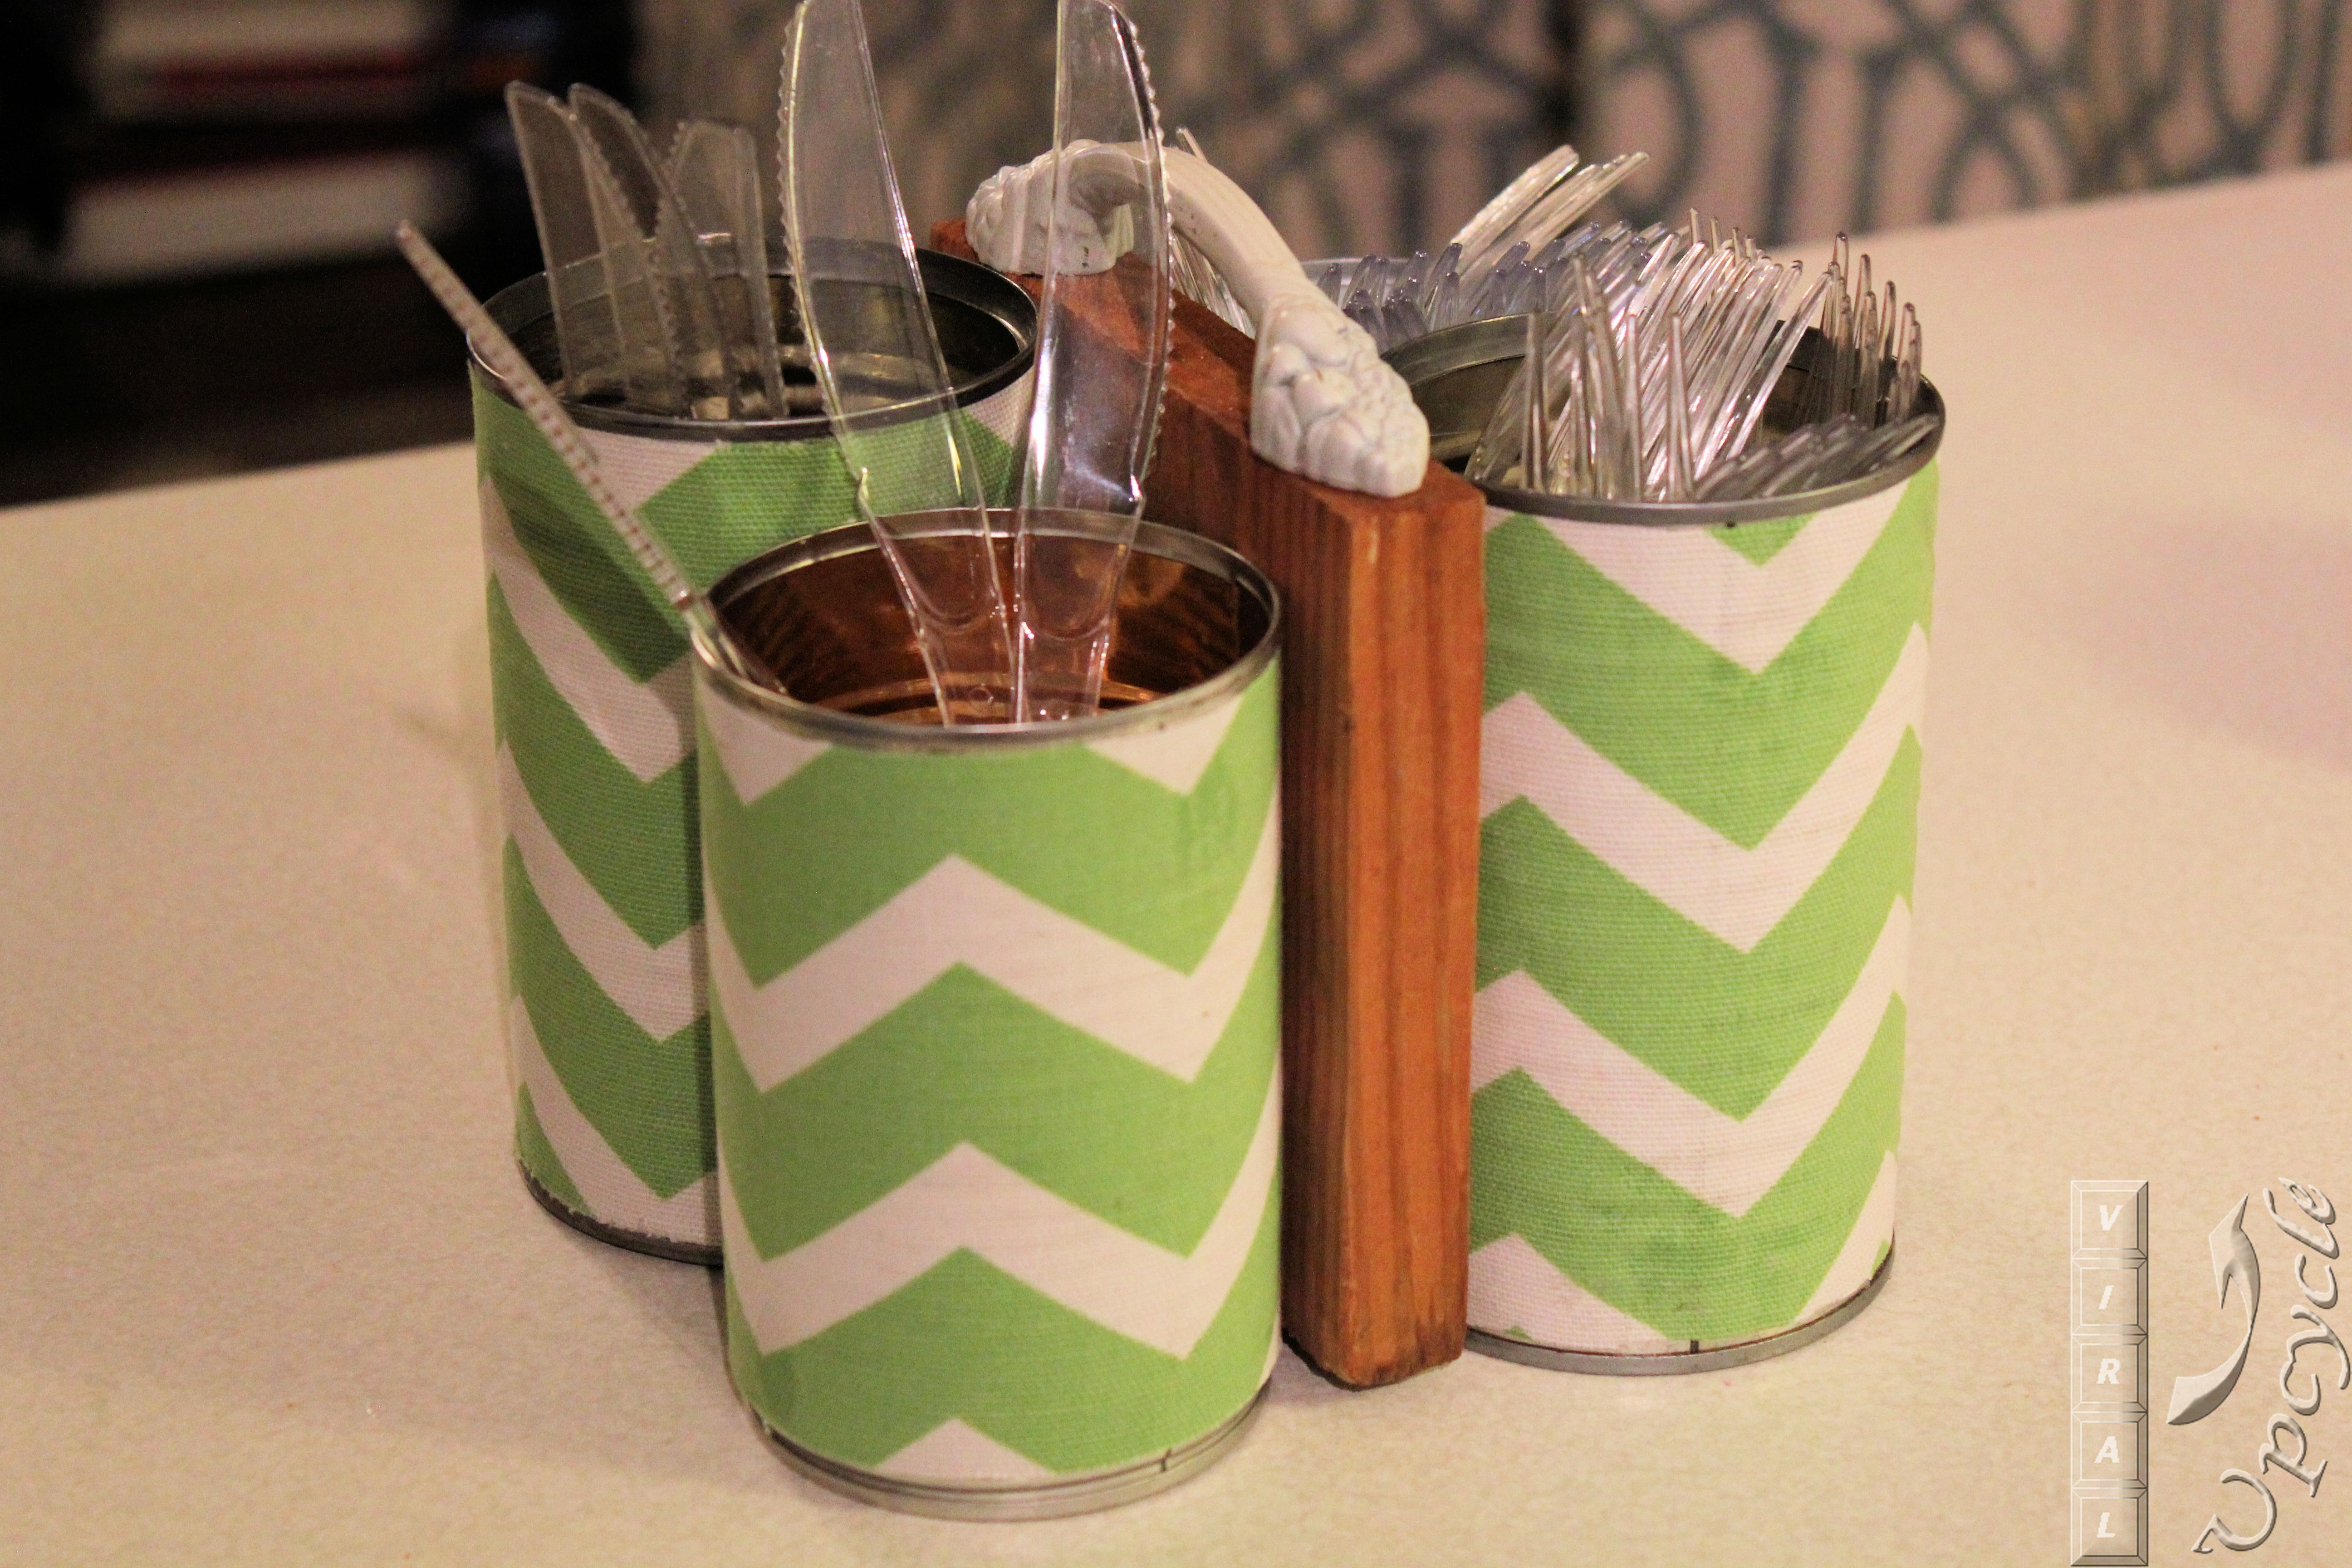 green and white chevron motif on Utensil Caddy for kitchen accessories ideas